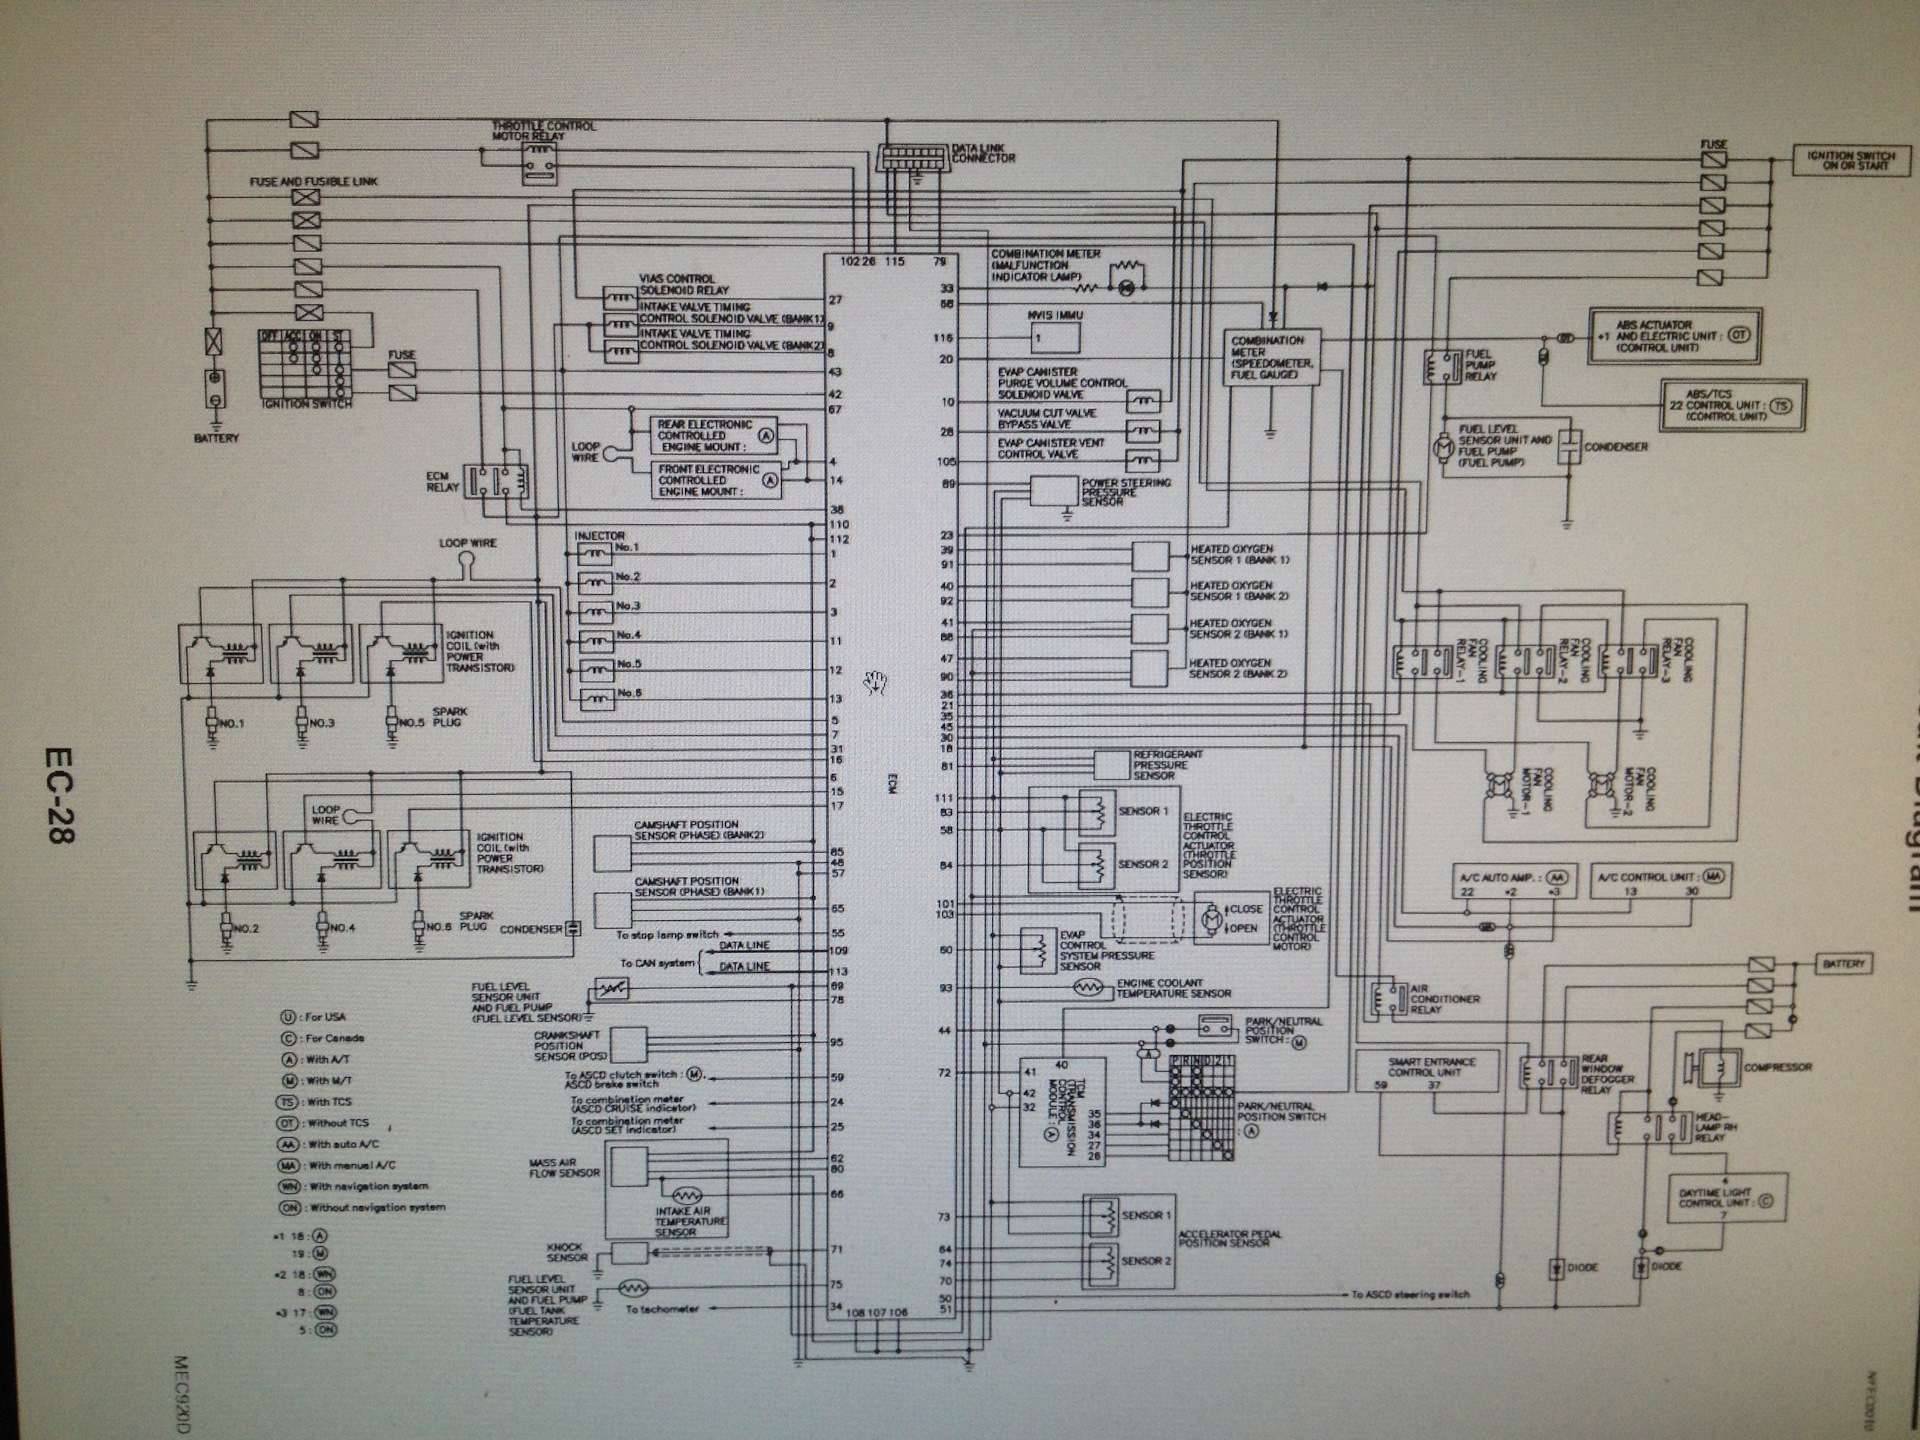 hight resolution of nissan vh41 wiring diagram wiring library rh 79 budoshop4you de td engine nissan nissan vg30e engine